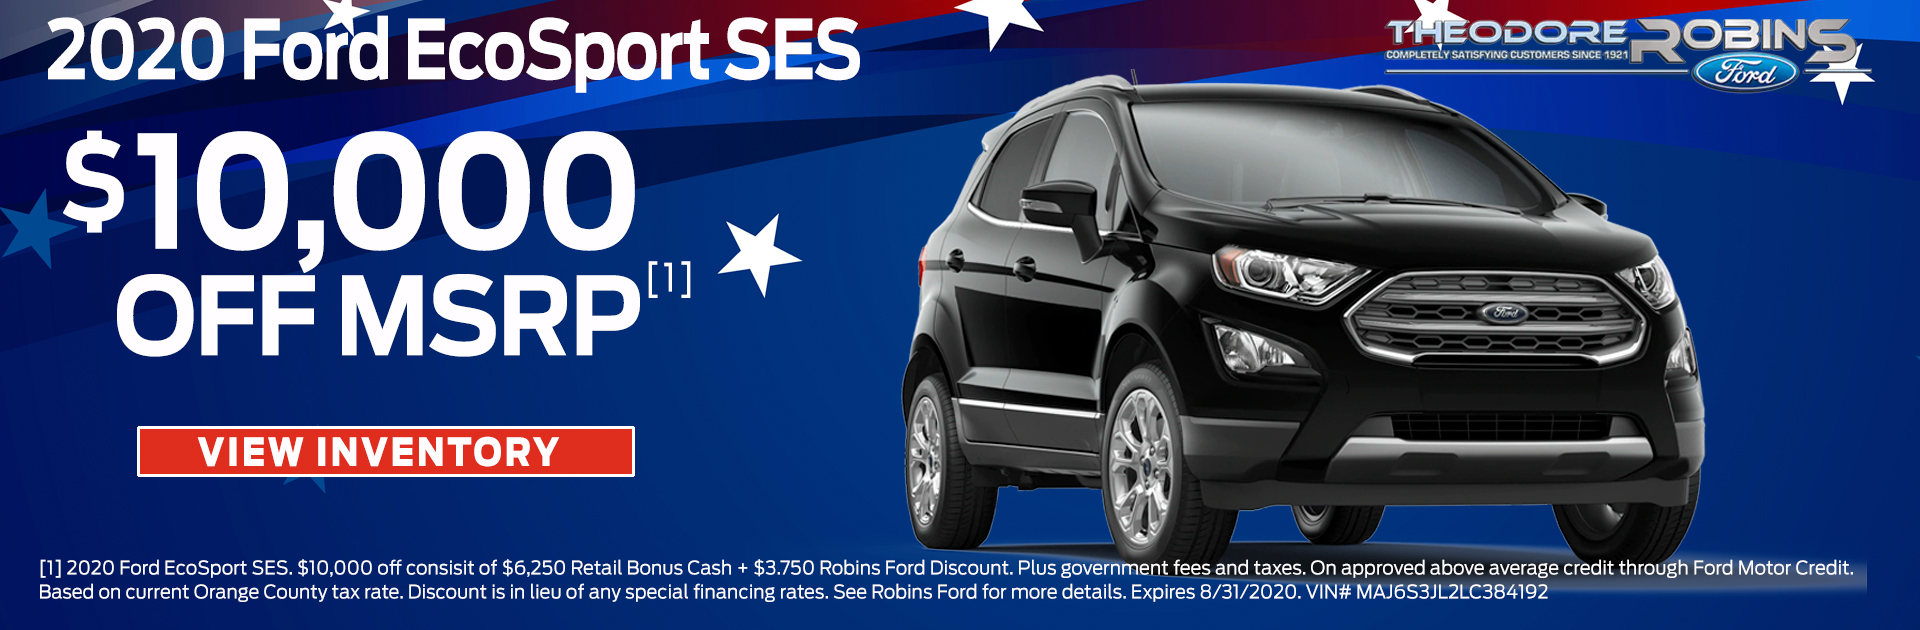 Robins Ford 2020 Ford Ecosport Ses August 1